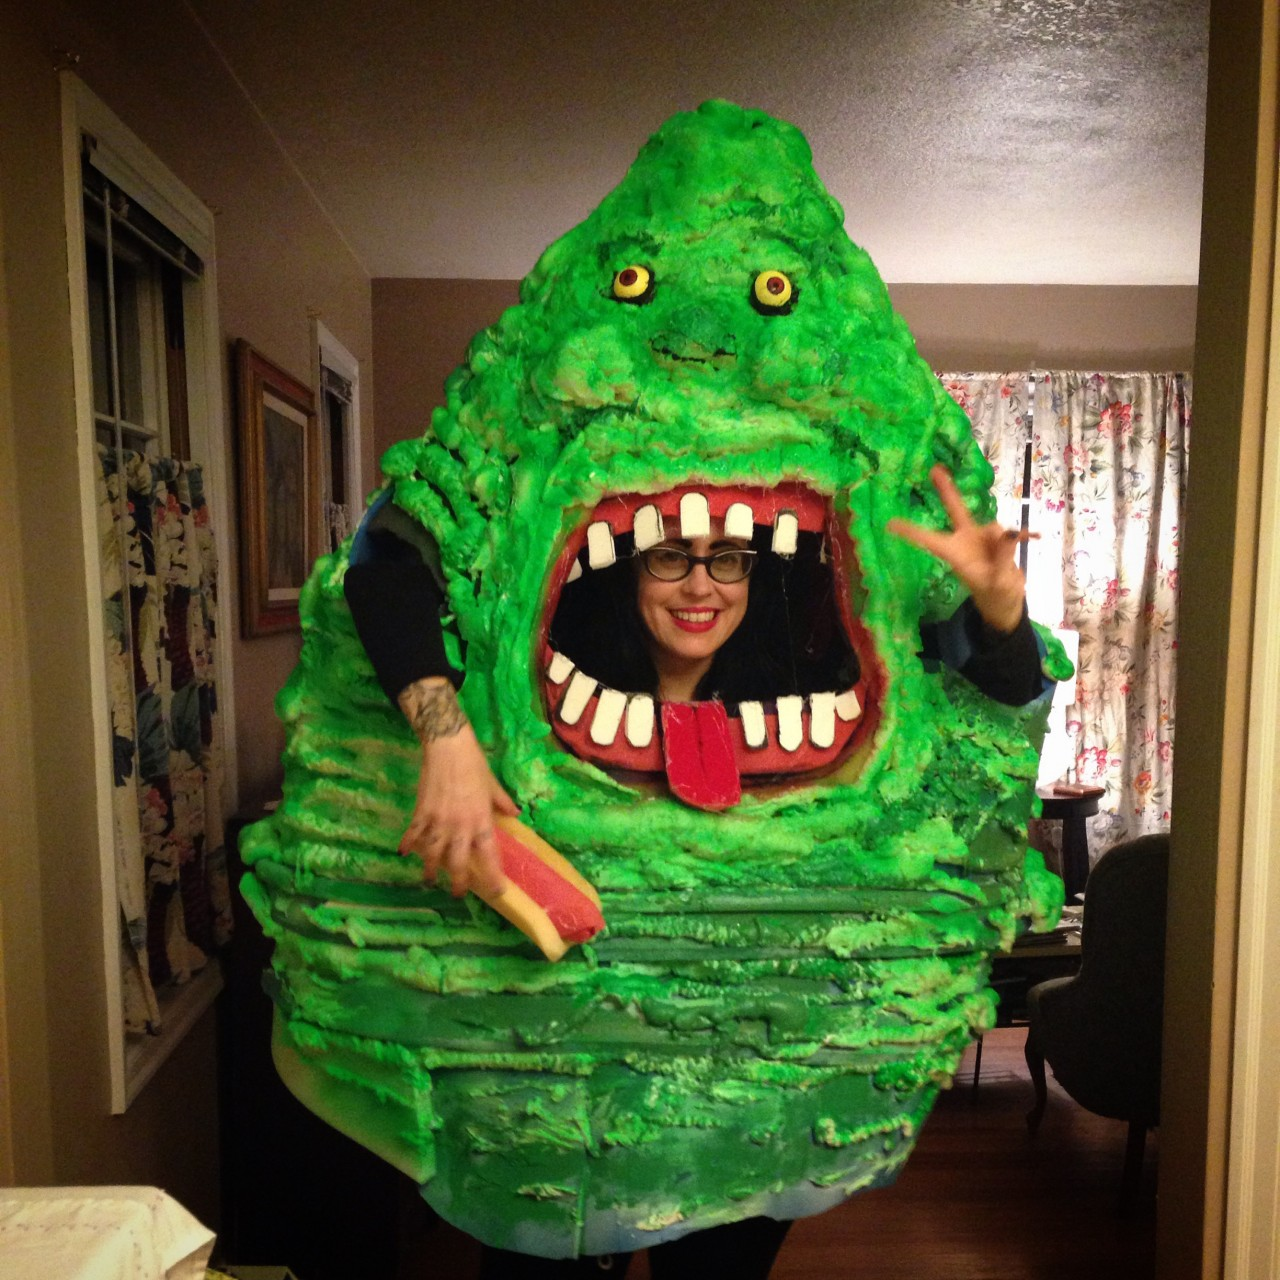 The completed Slimer costume!!